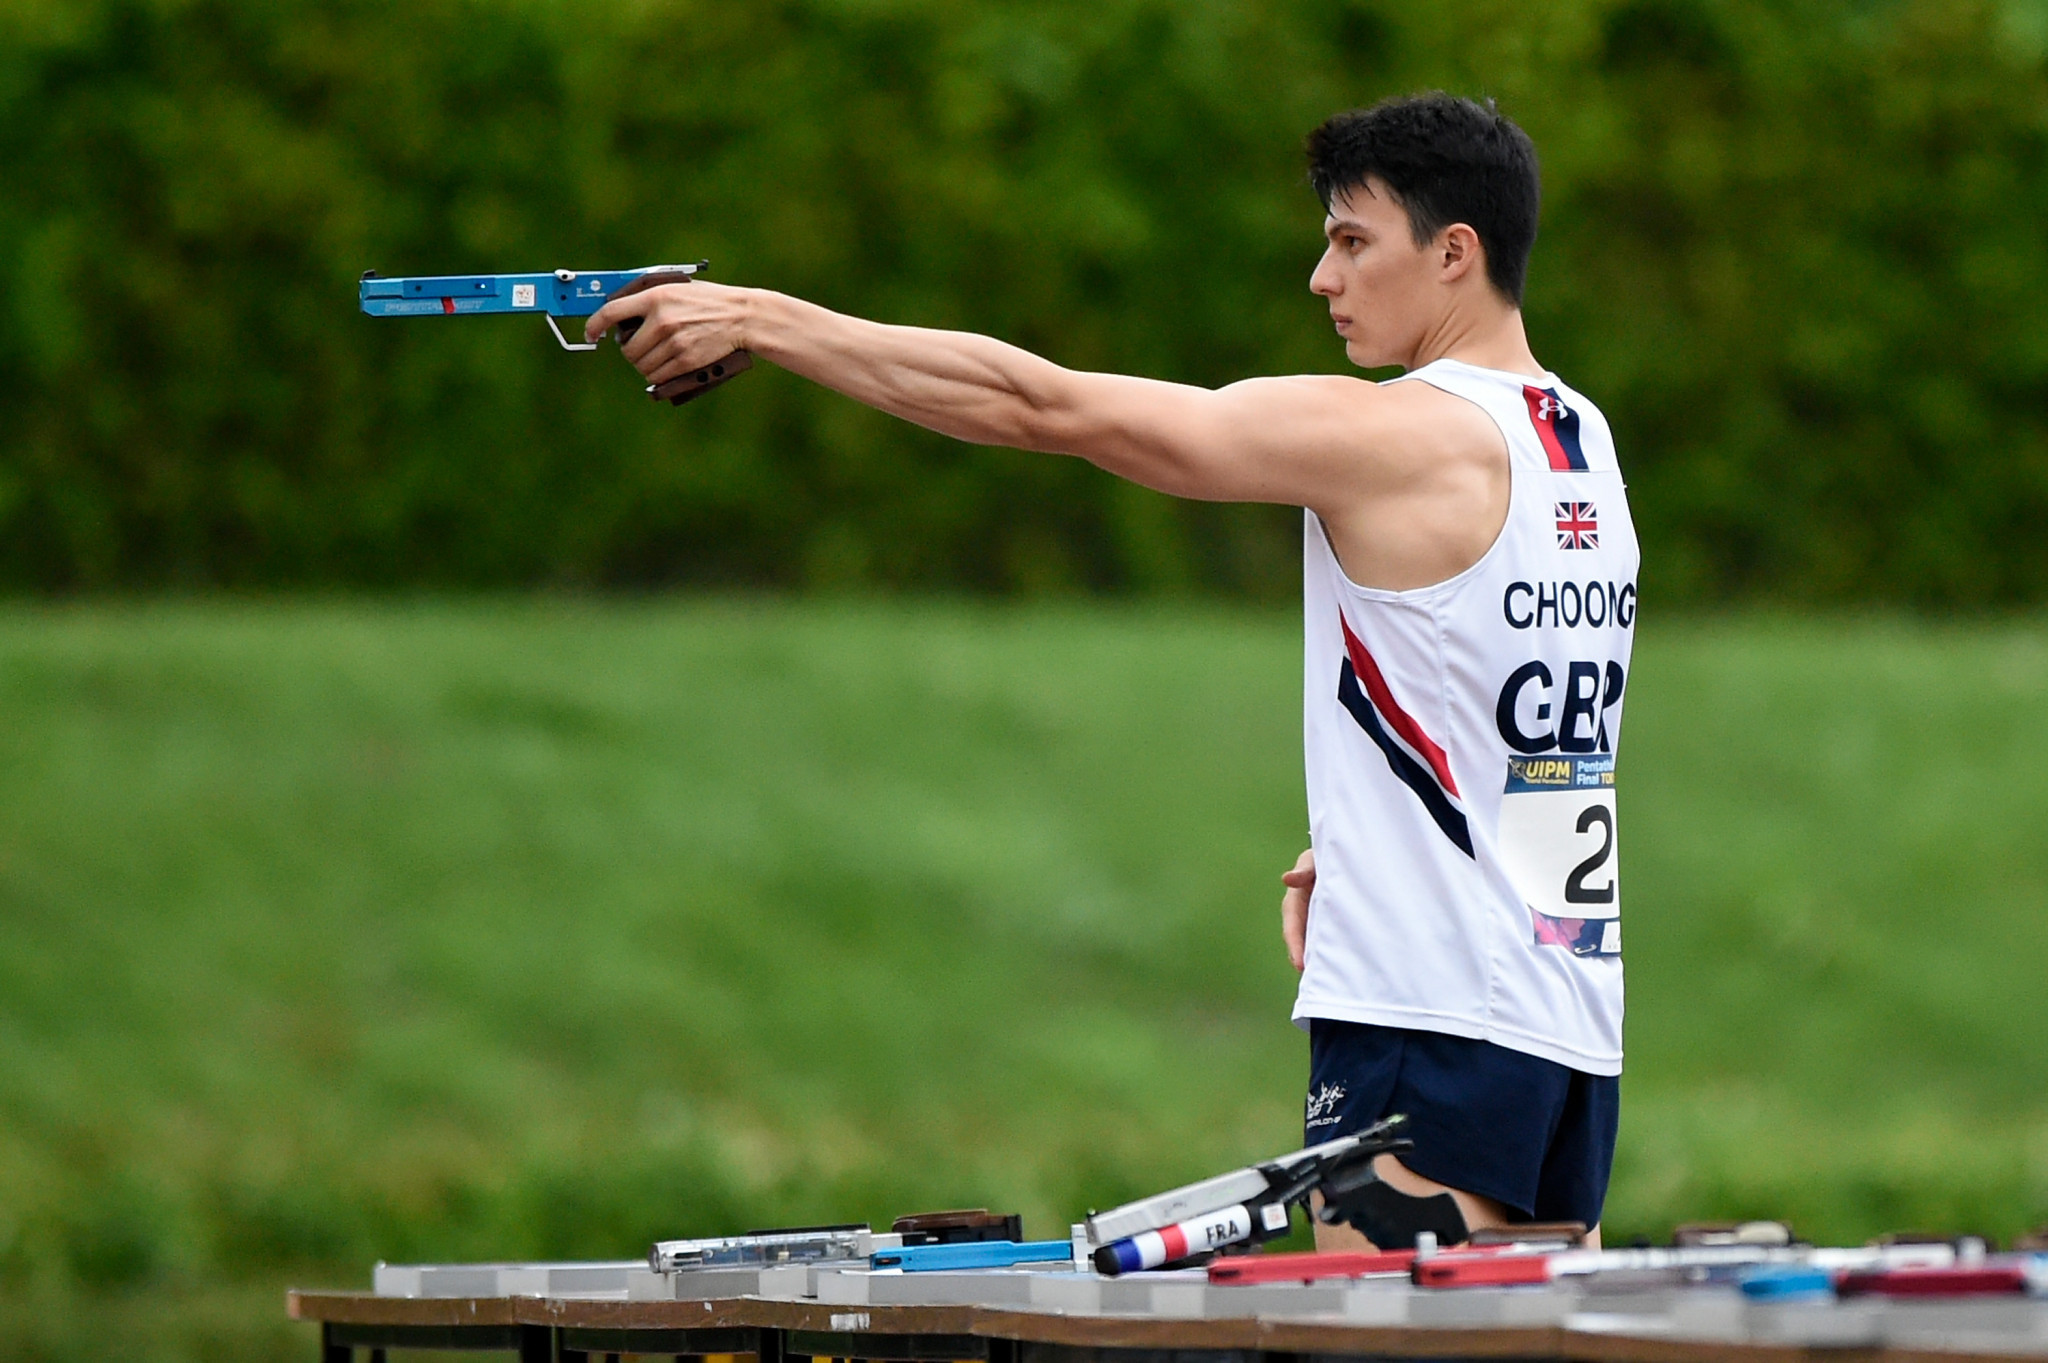 British hopefuls impress on home soil in European Modern Pentathlon men's qualification